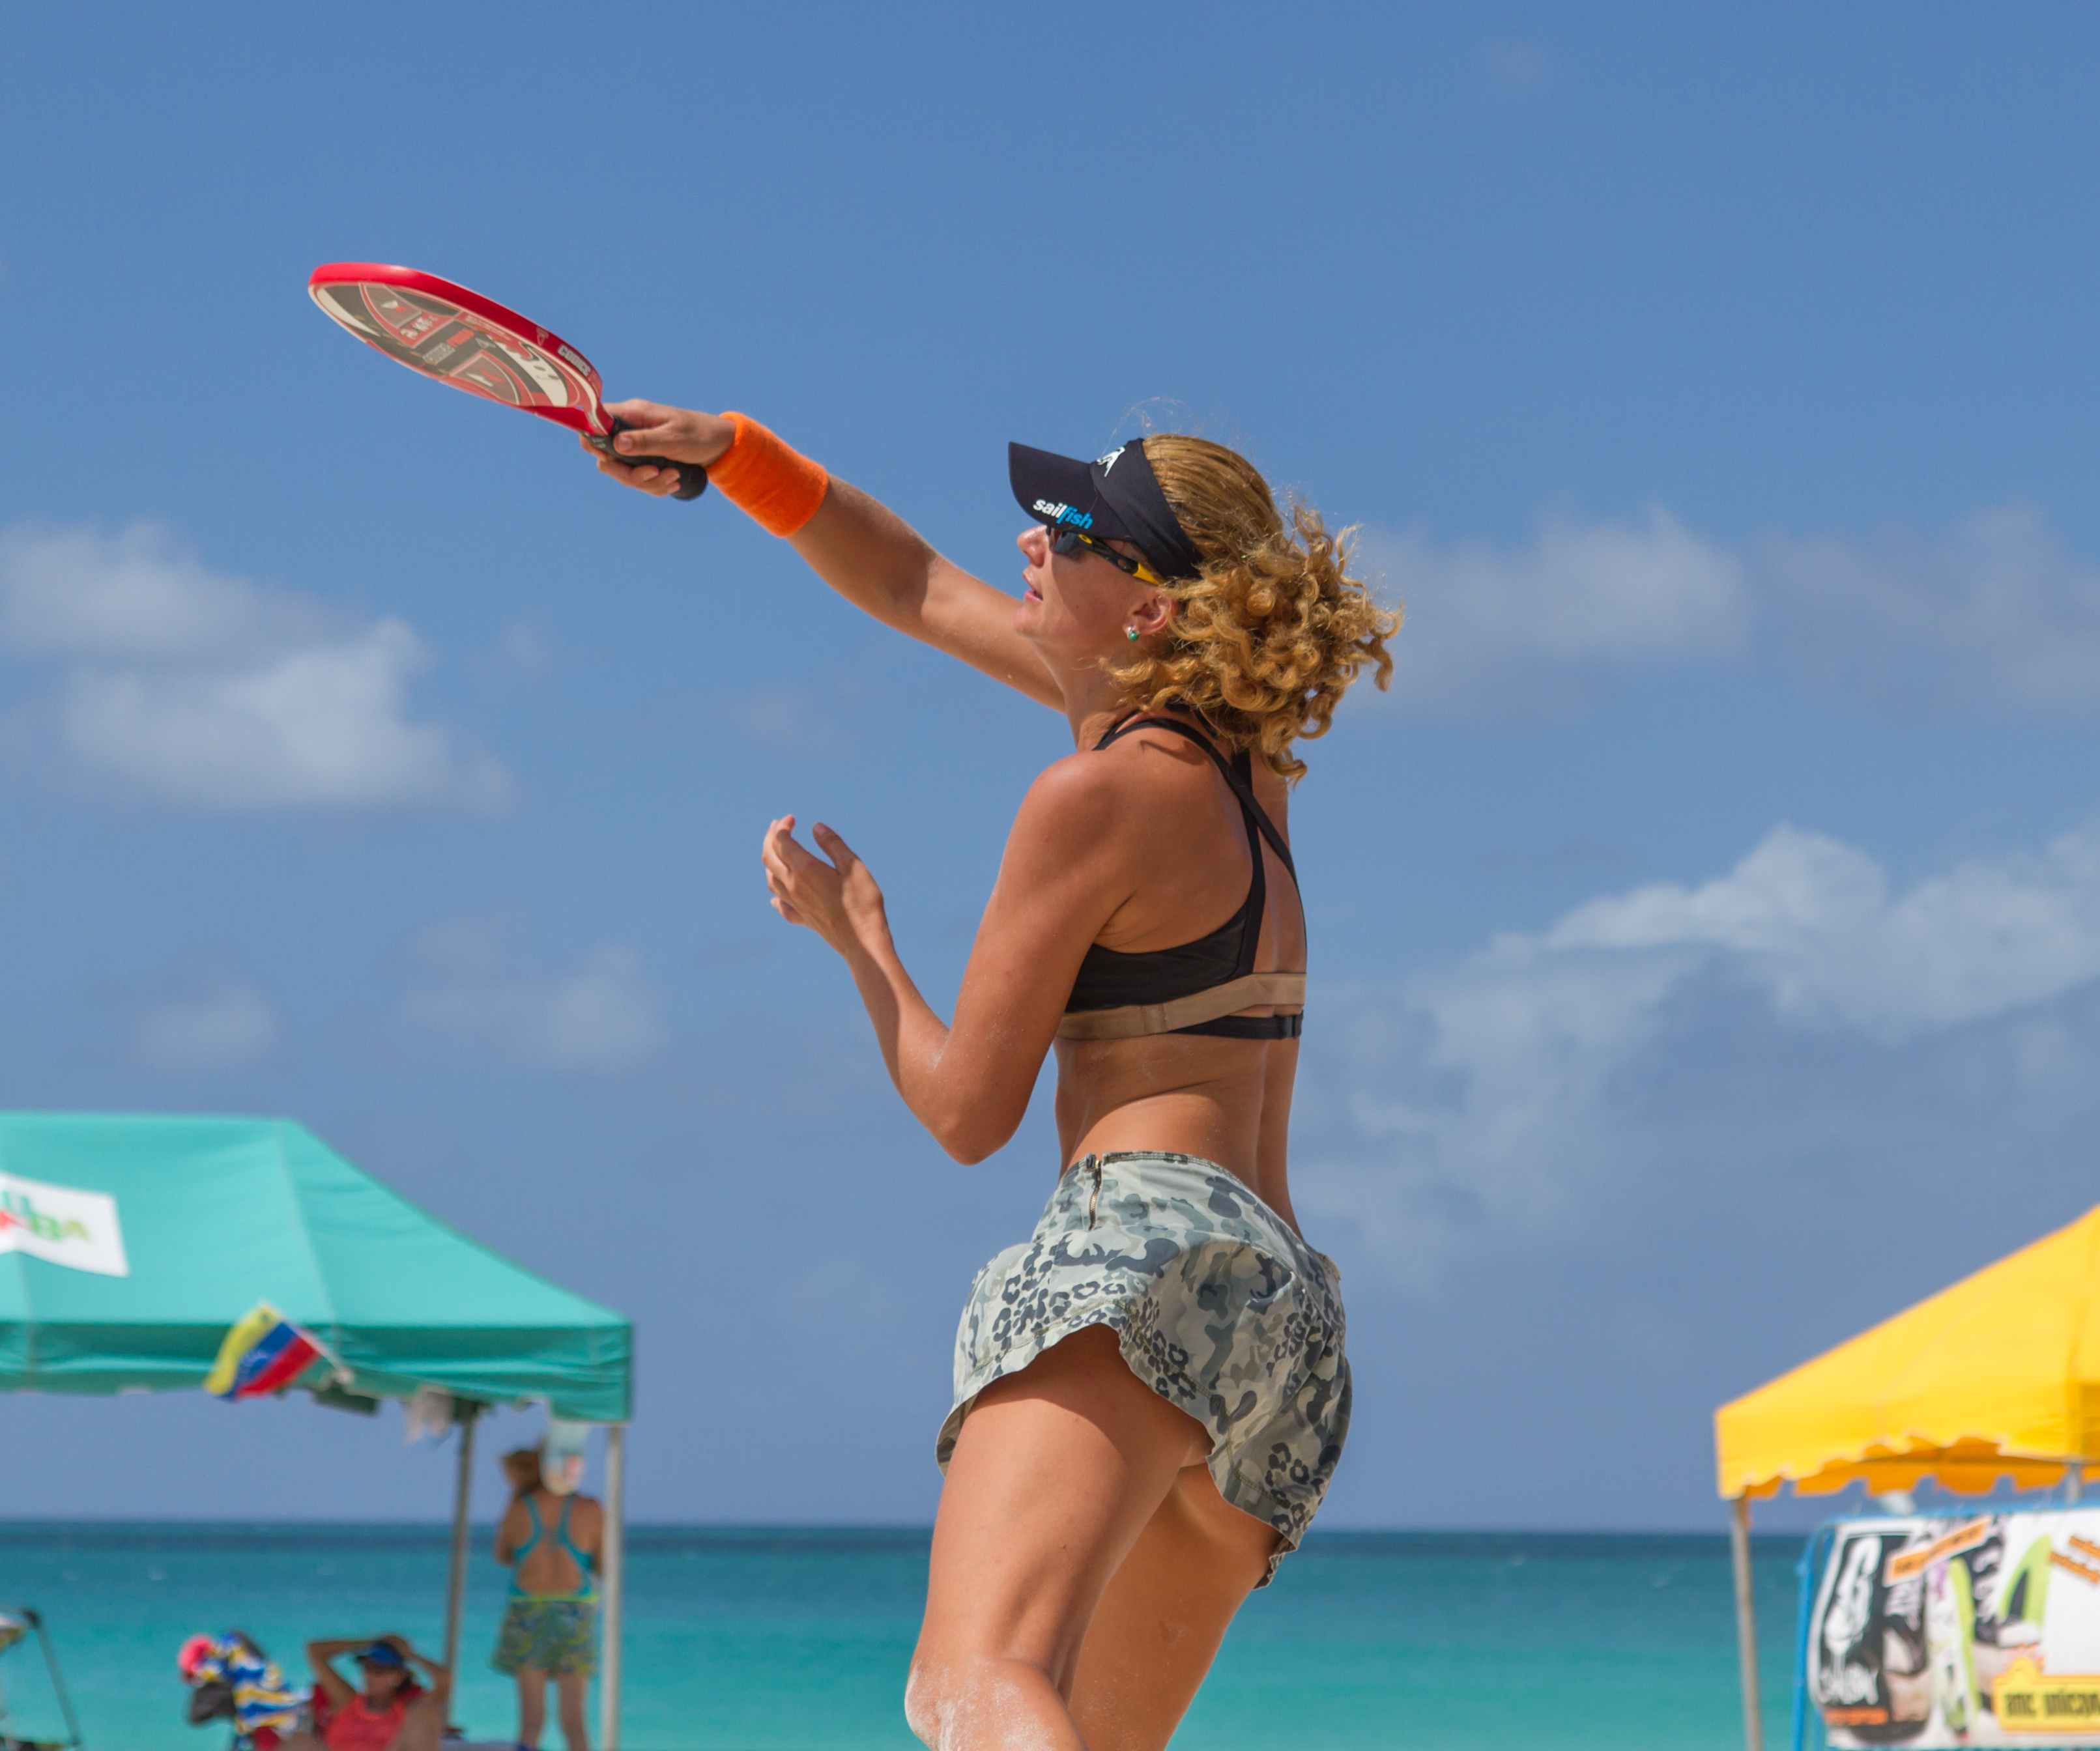 IMG_6556.jpg Beach Tennis in Aruba